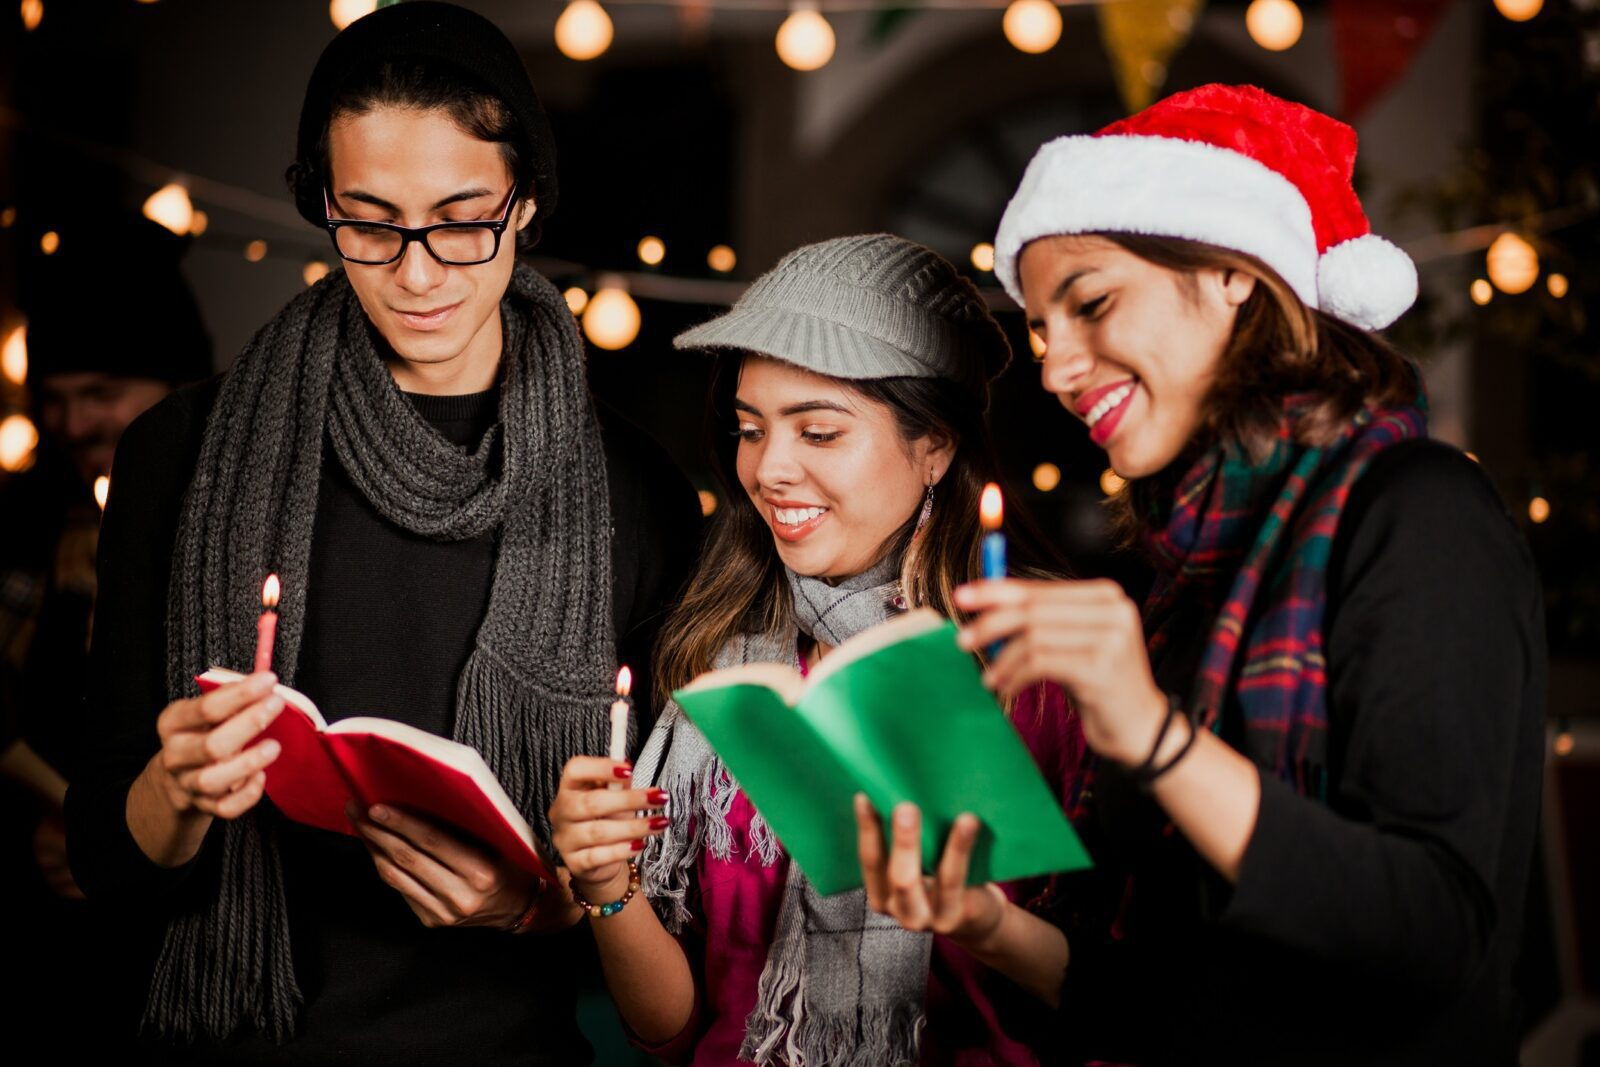 Carolers, candles, book, christmas lights